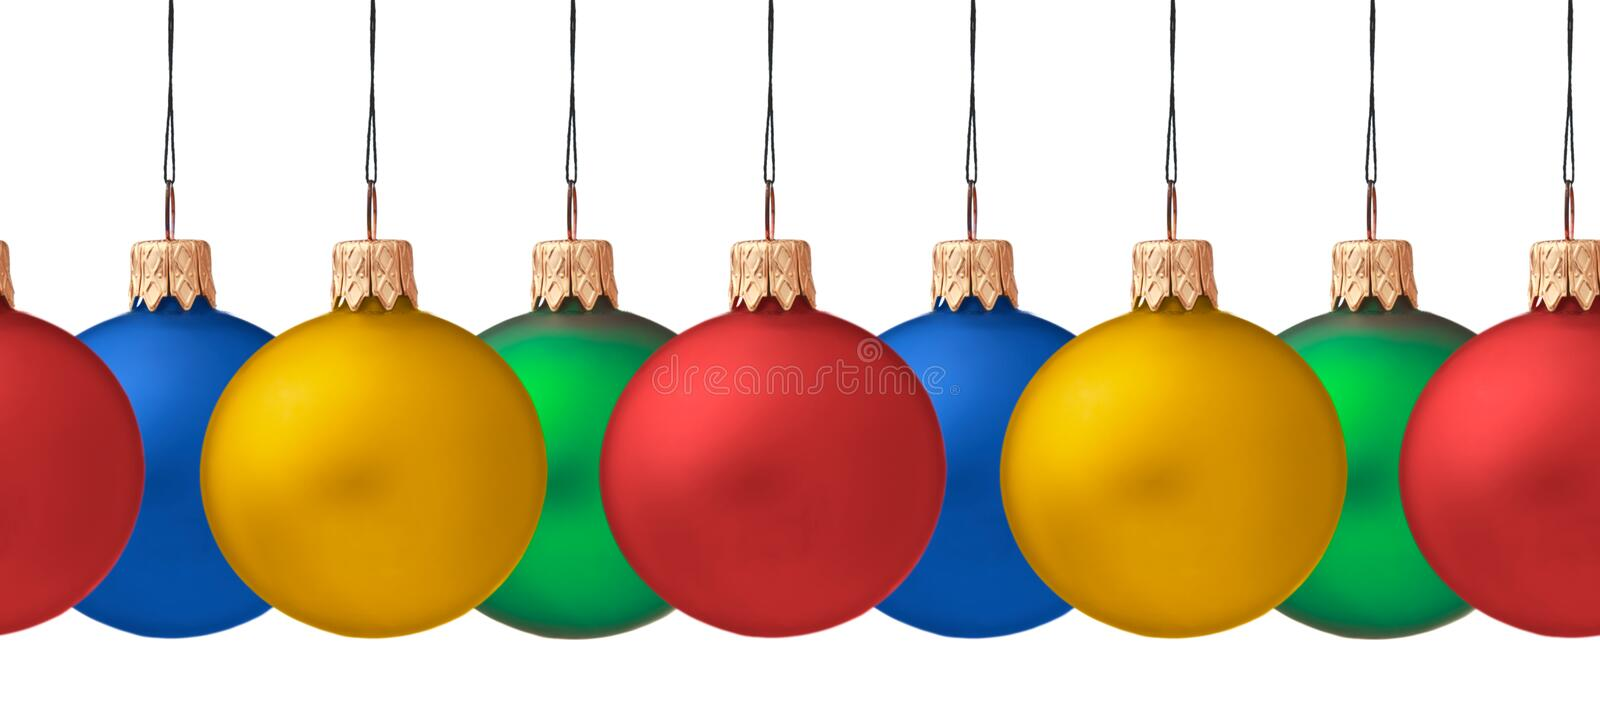 Row of hanging Christmas baubles royalty free stock photos